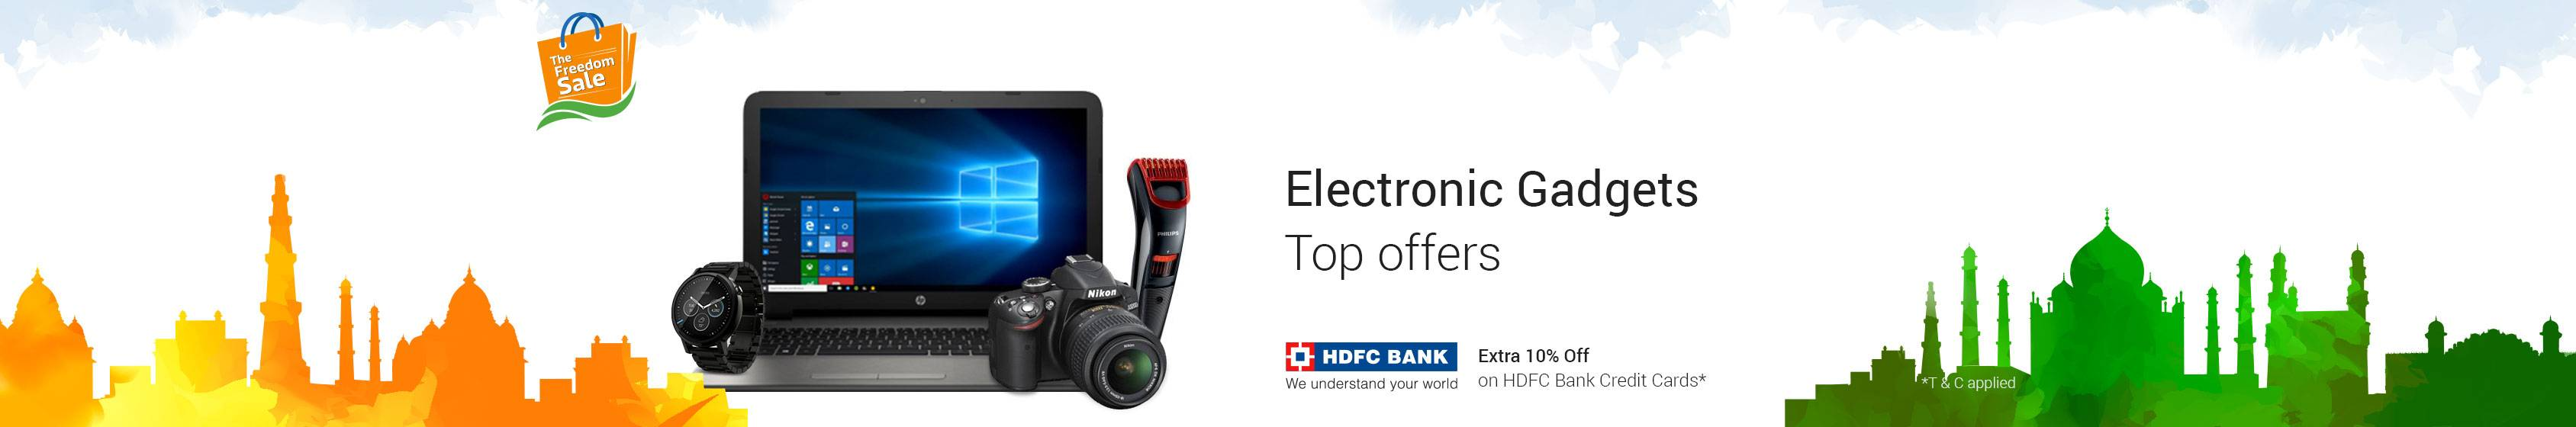 Top Offers on Electronic Gadgets Laptops, Cameras, DSLR